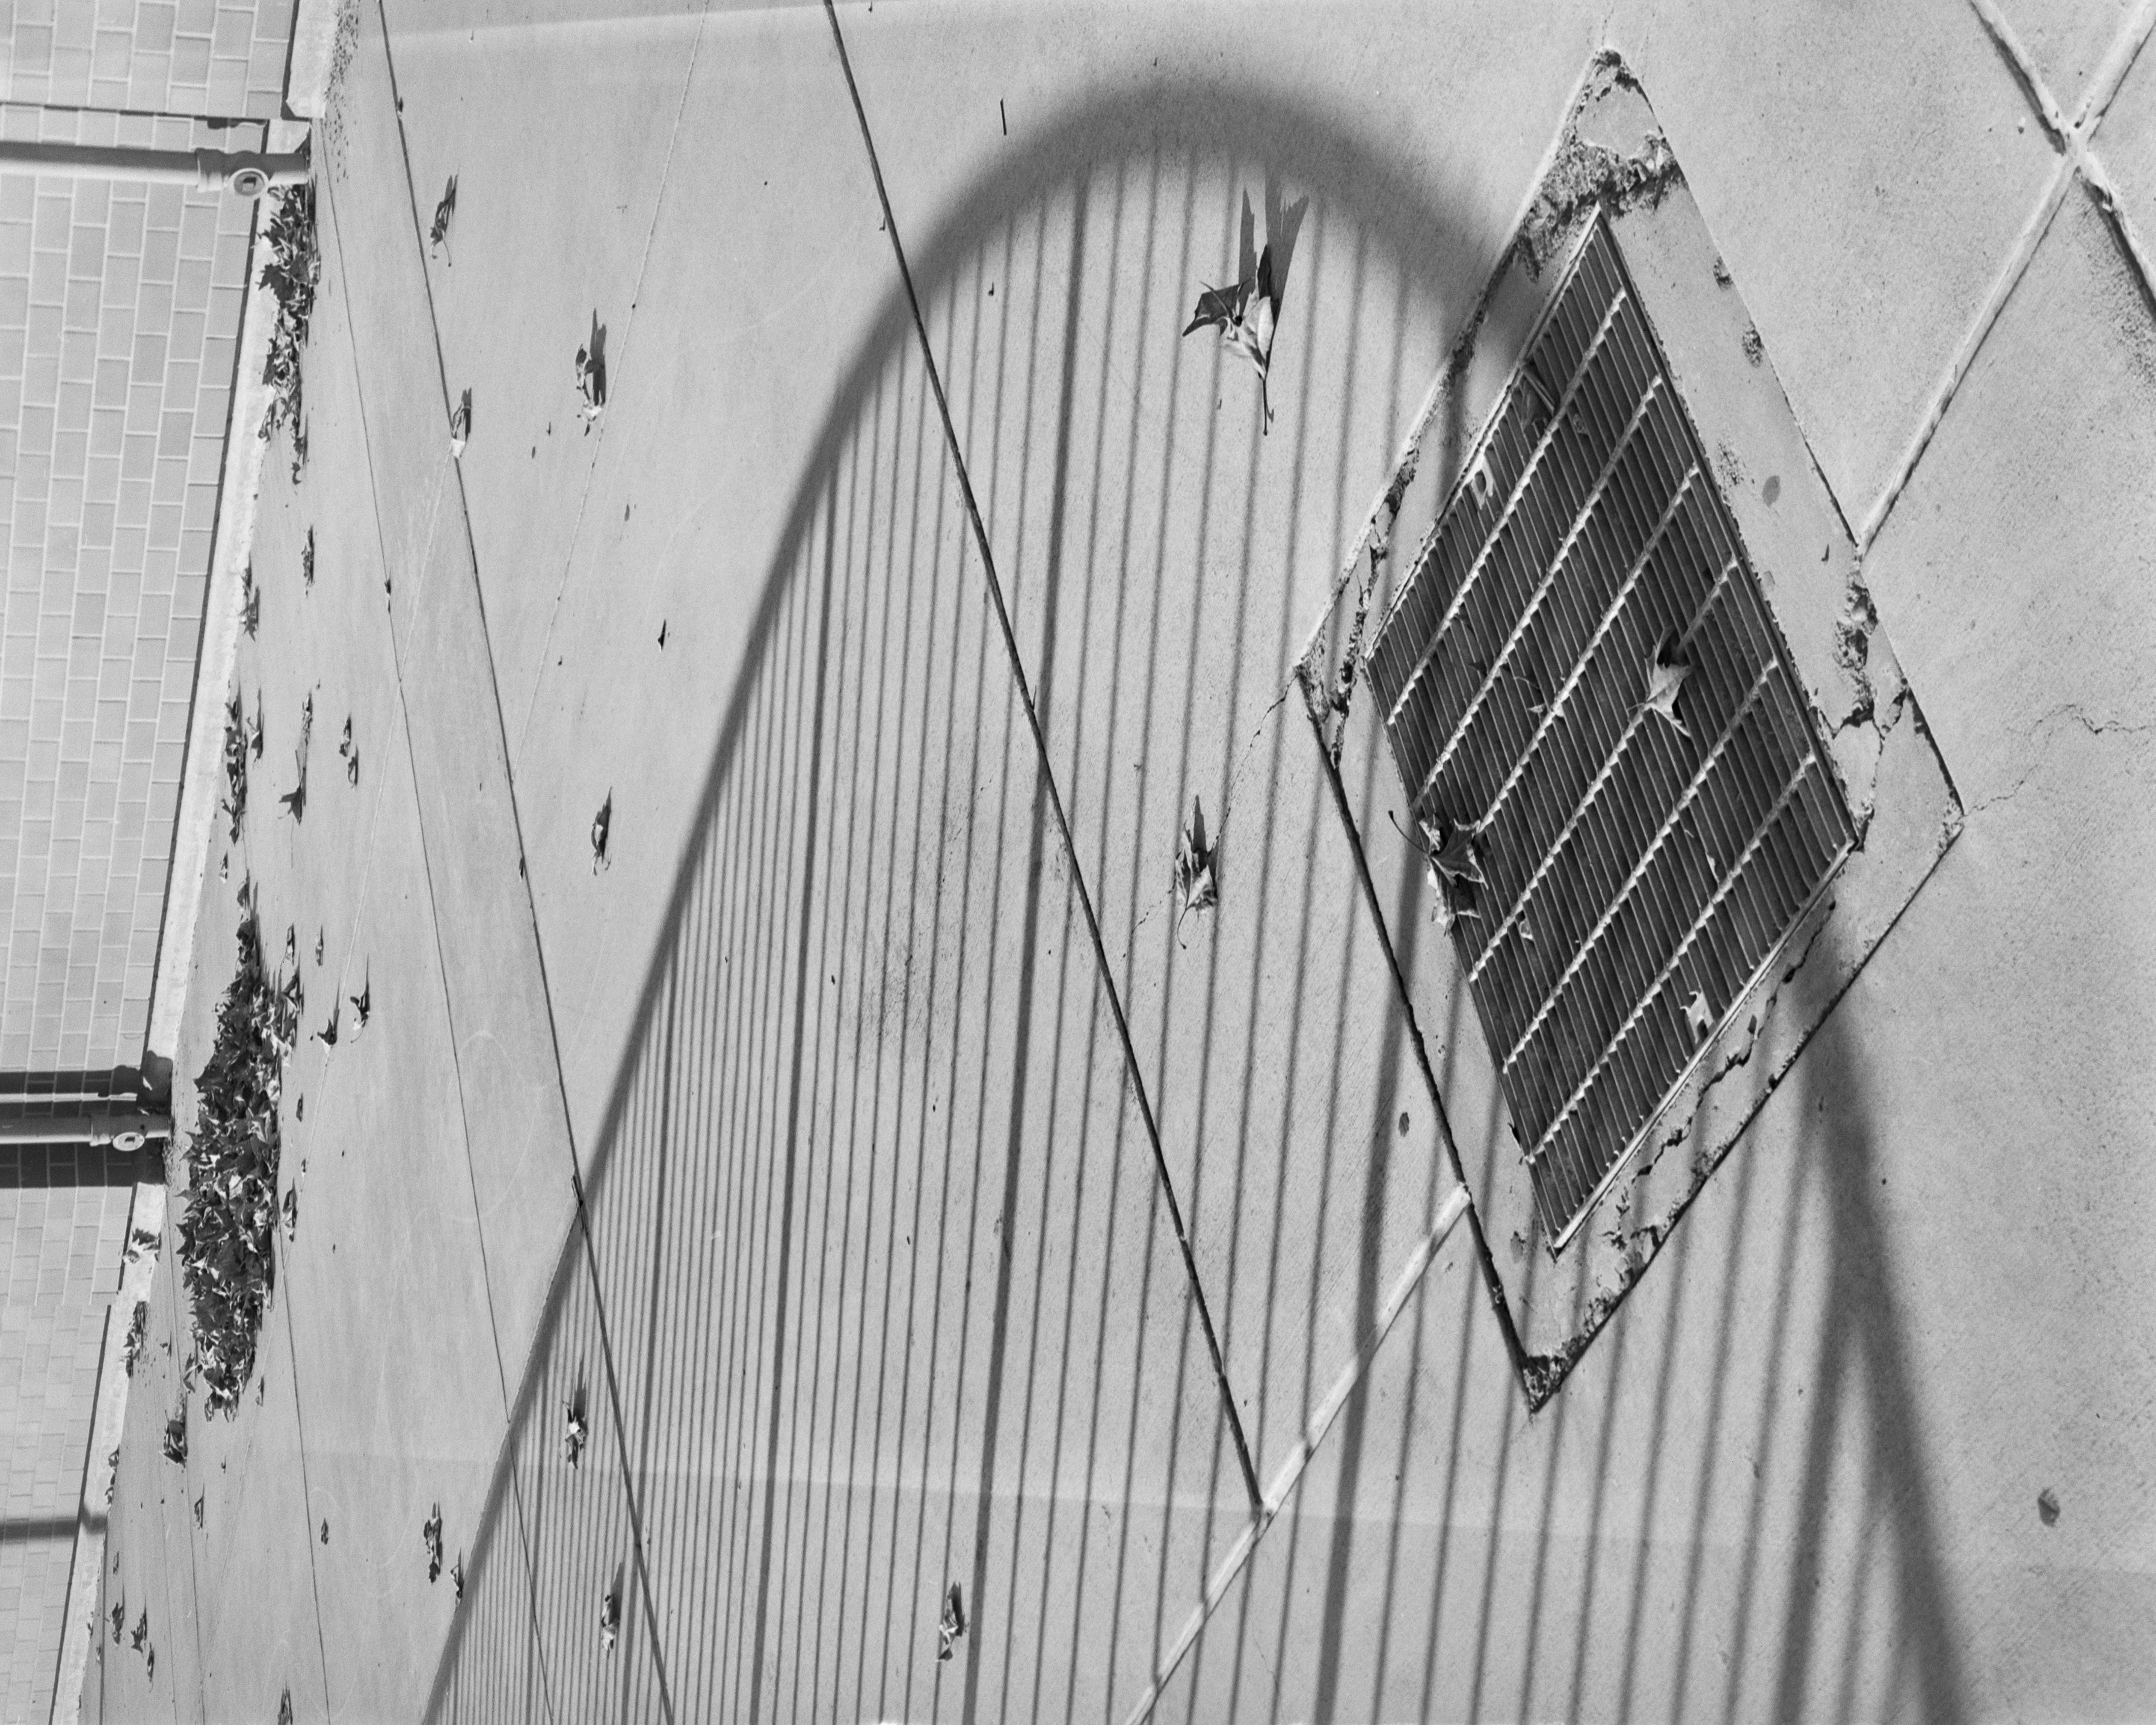 A black-and-white photograph of abstract shapes. Closer inspection reveals that the photograph has been rotated by 90 degrees, and depicts is a metal drain gate set in the middle of a cement-paved area. The shadow of a handrailing drapes across the image, and a pile of leaves sits in the background.